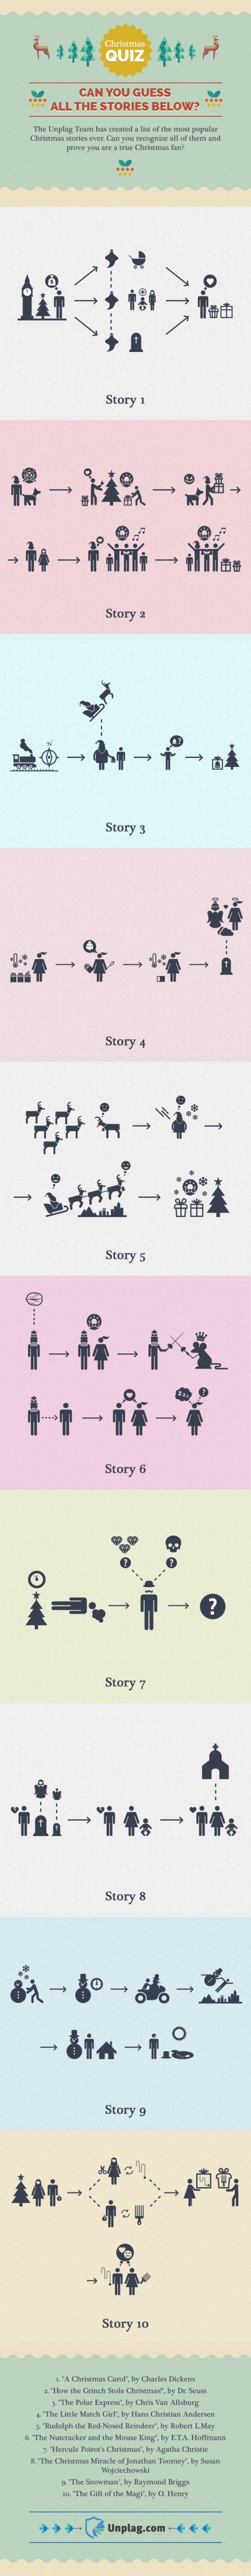 Can you guess Christmas stories from these pictograms? #infographic